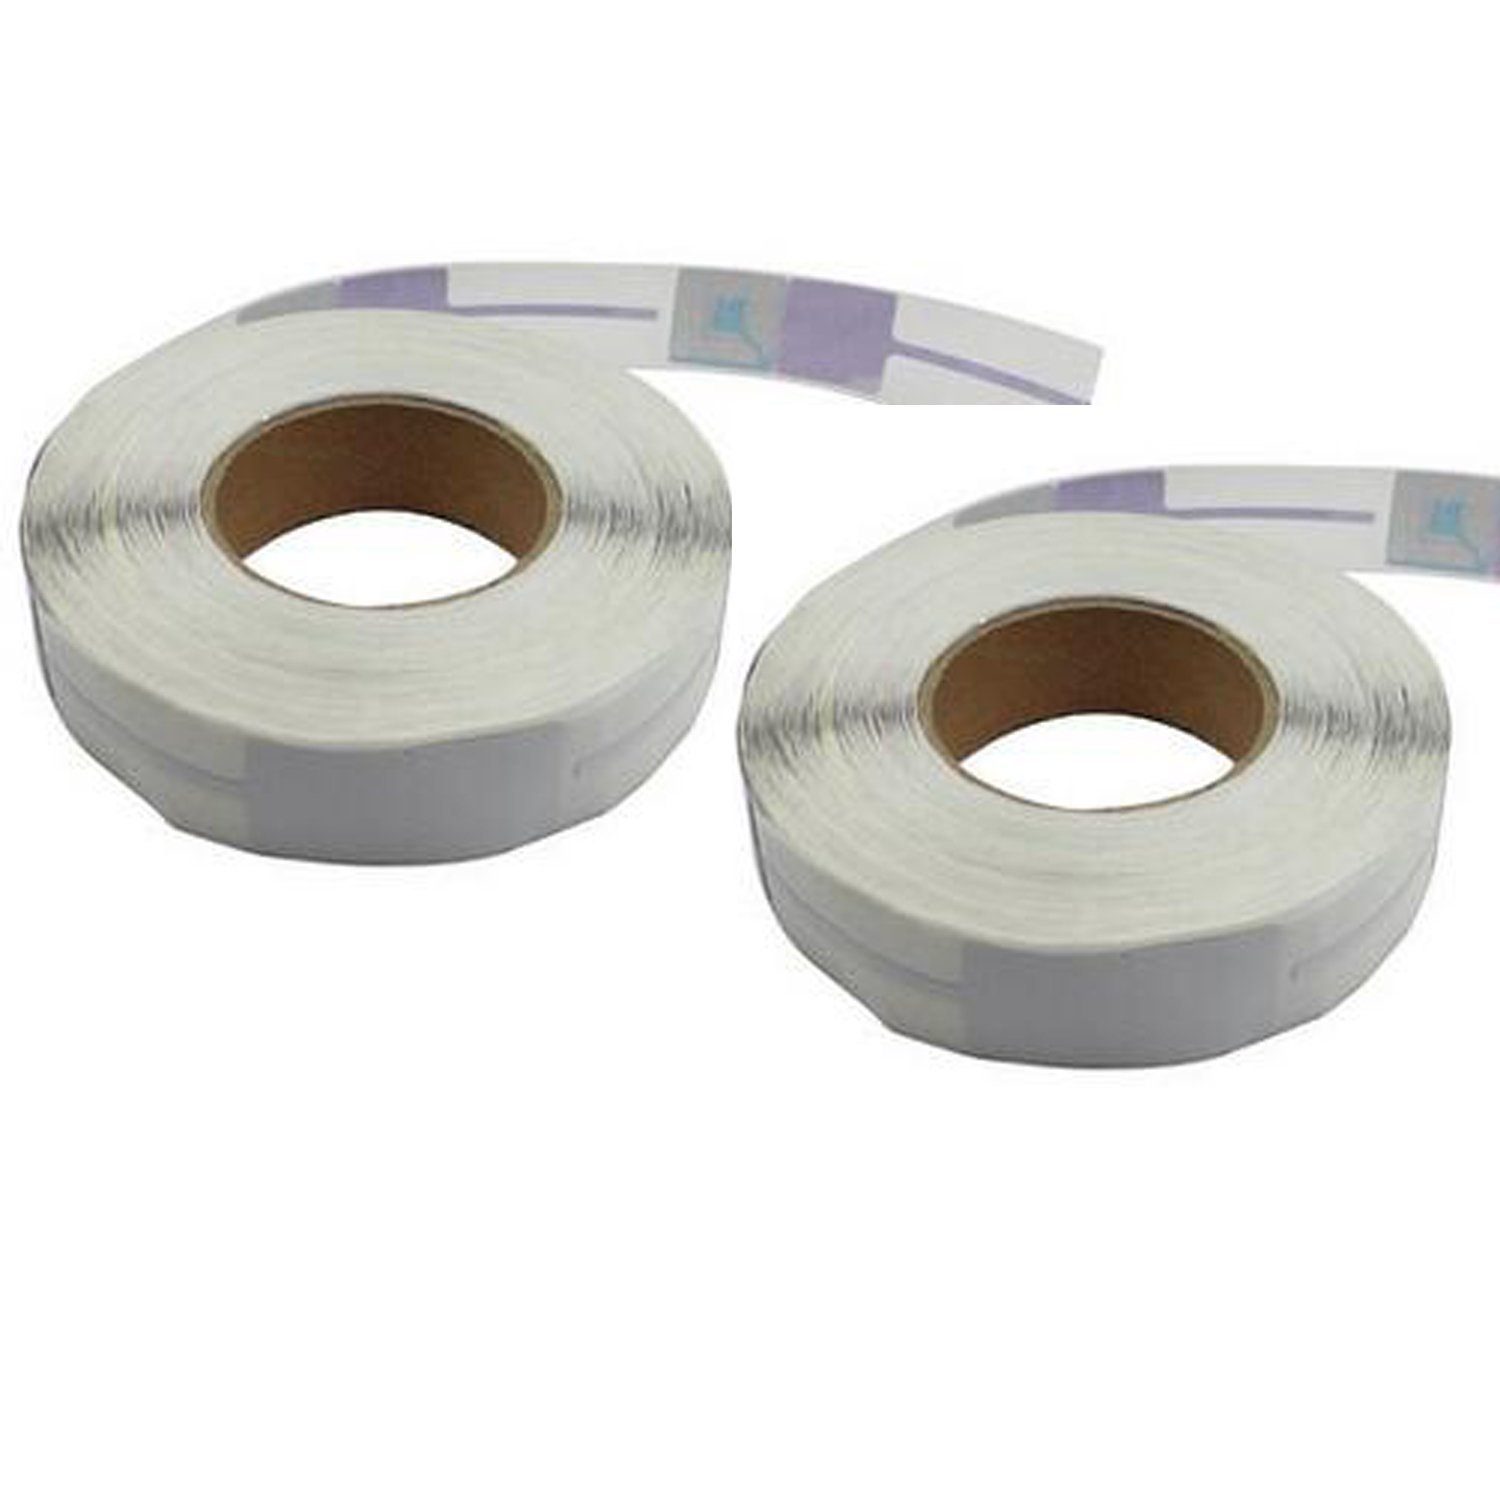 Aoneso 5Rolls-5000pcs EAS 8.2MHz Checkpoint Compatible Label RF Tags Anti-theft Round Barcode Fake Soft Labels Diameter: 1.57 inches